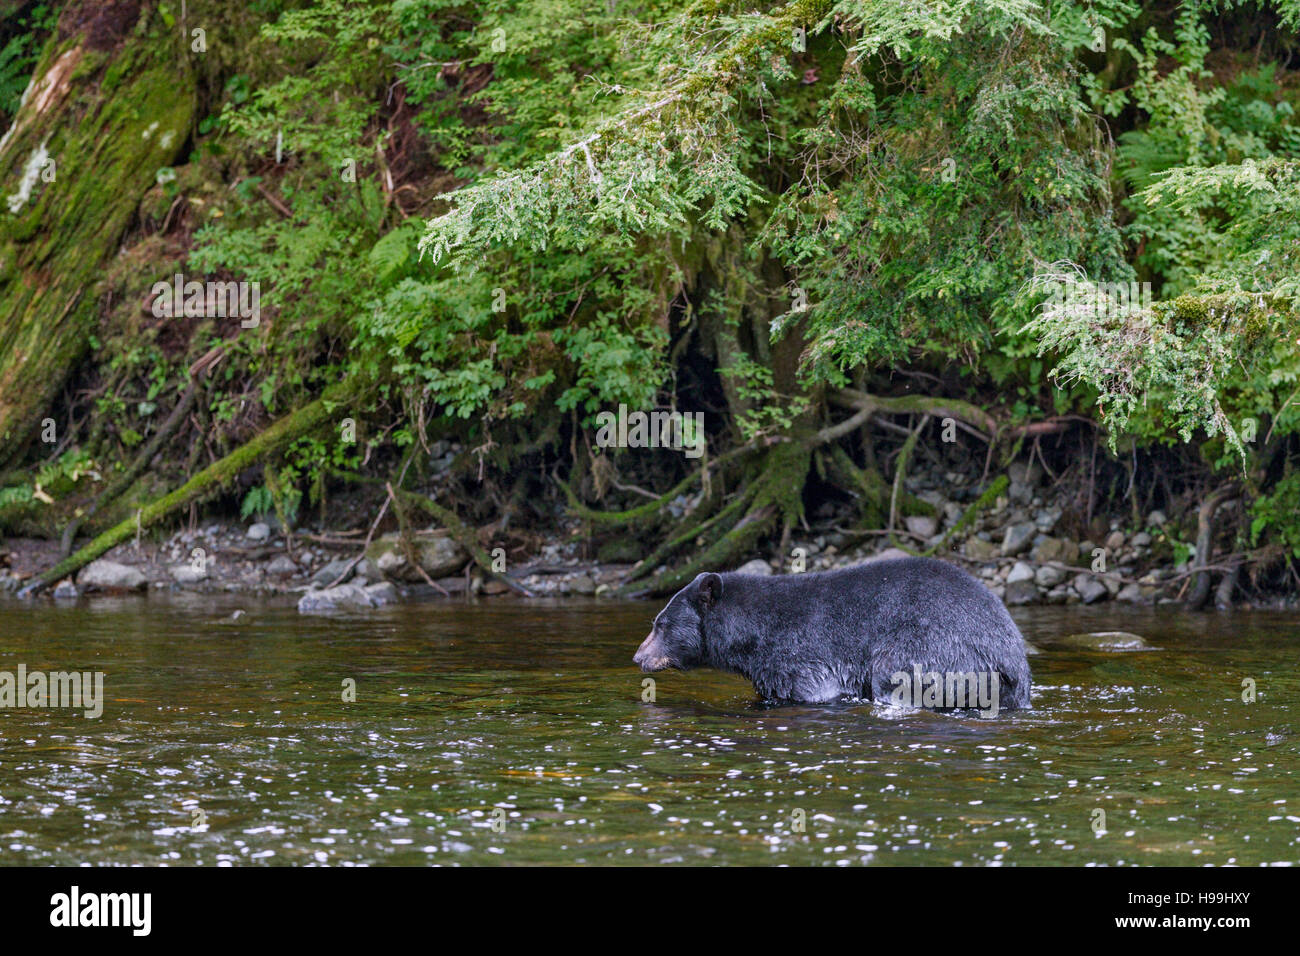 A Black Bear wades in a river to fish for spawning salmon, Tongass National Forest, Southeast Alaska Stock Photo